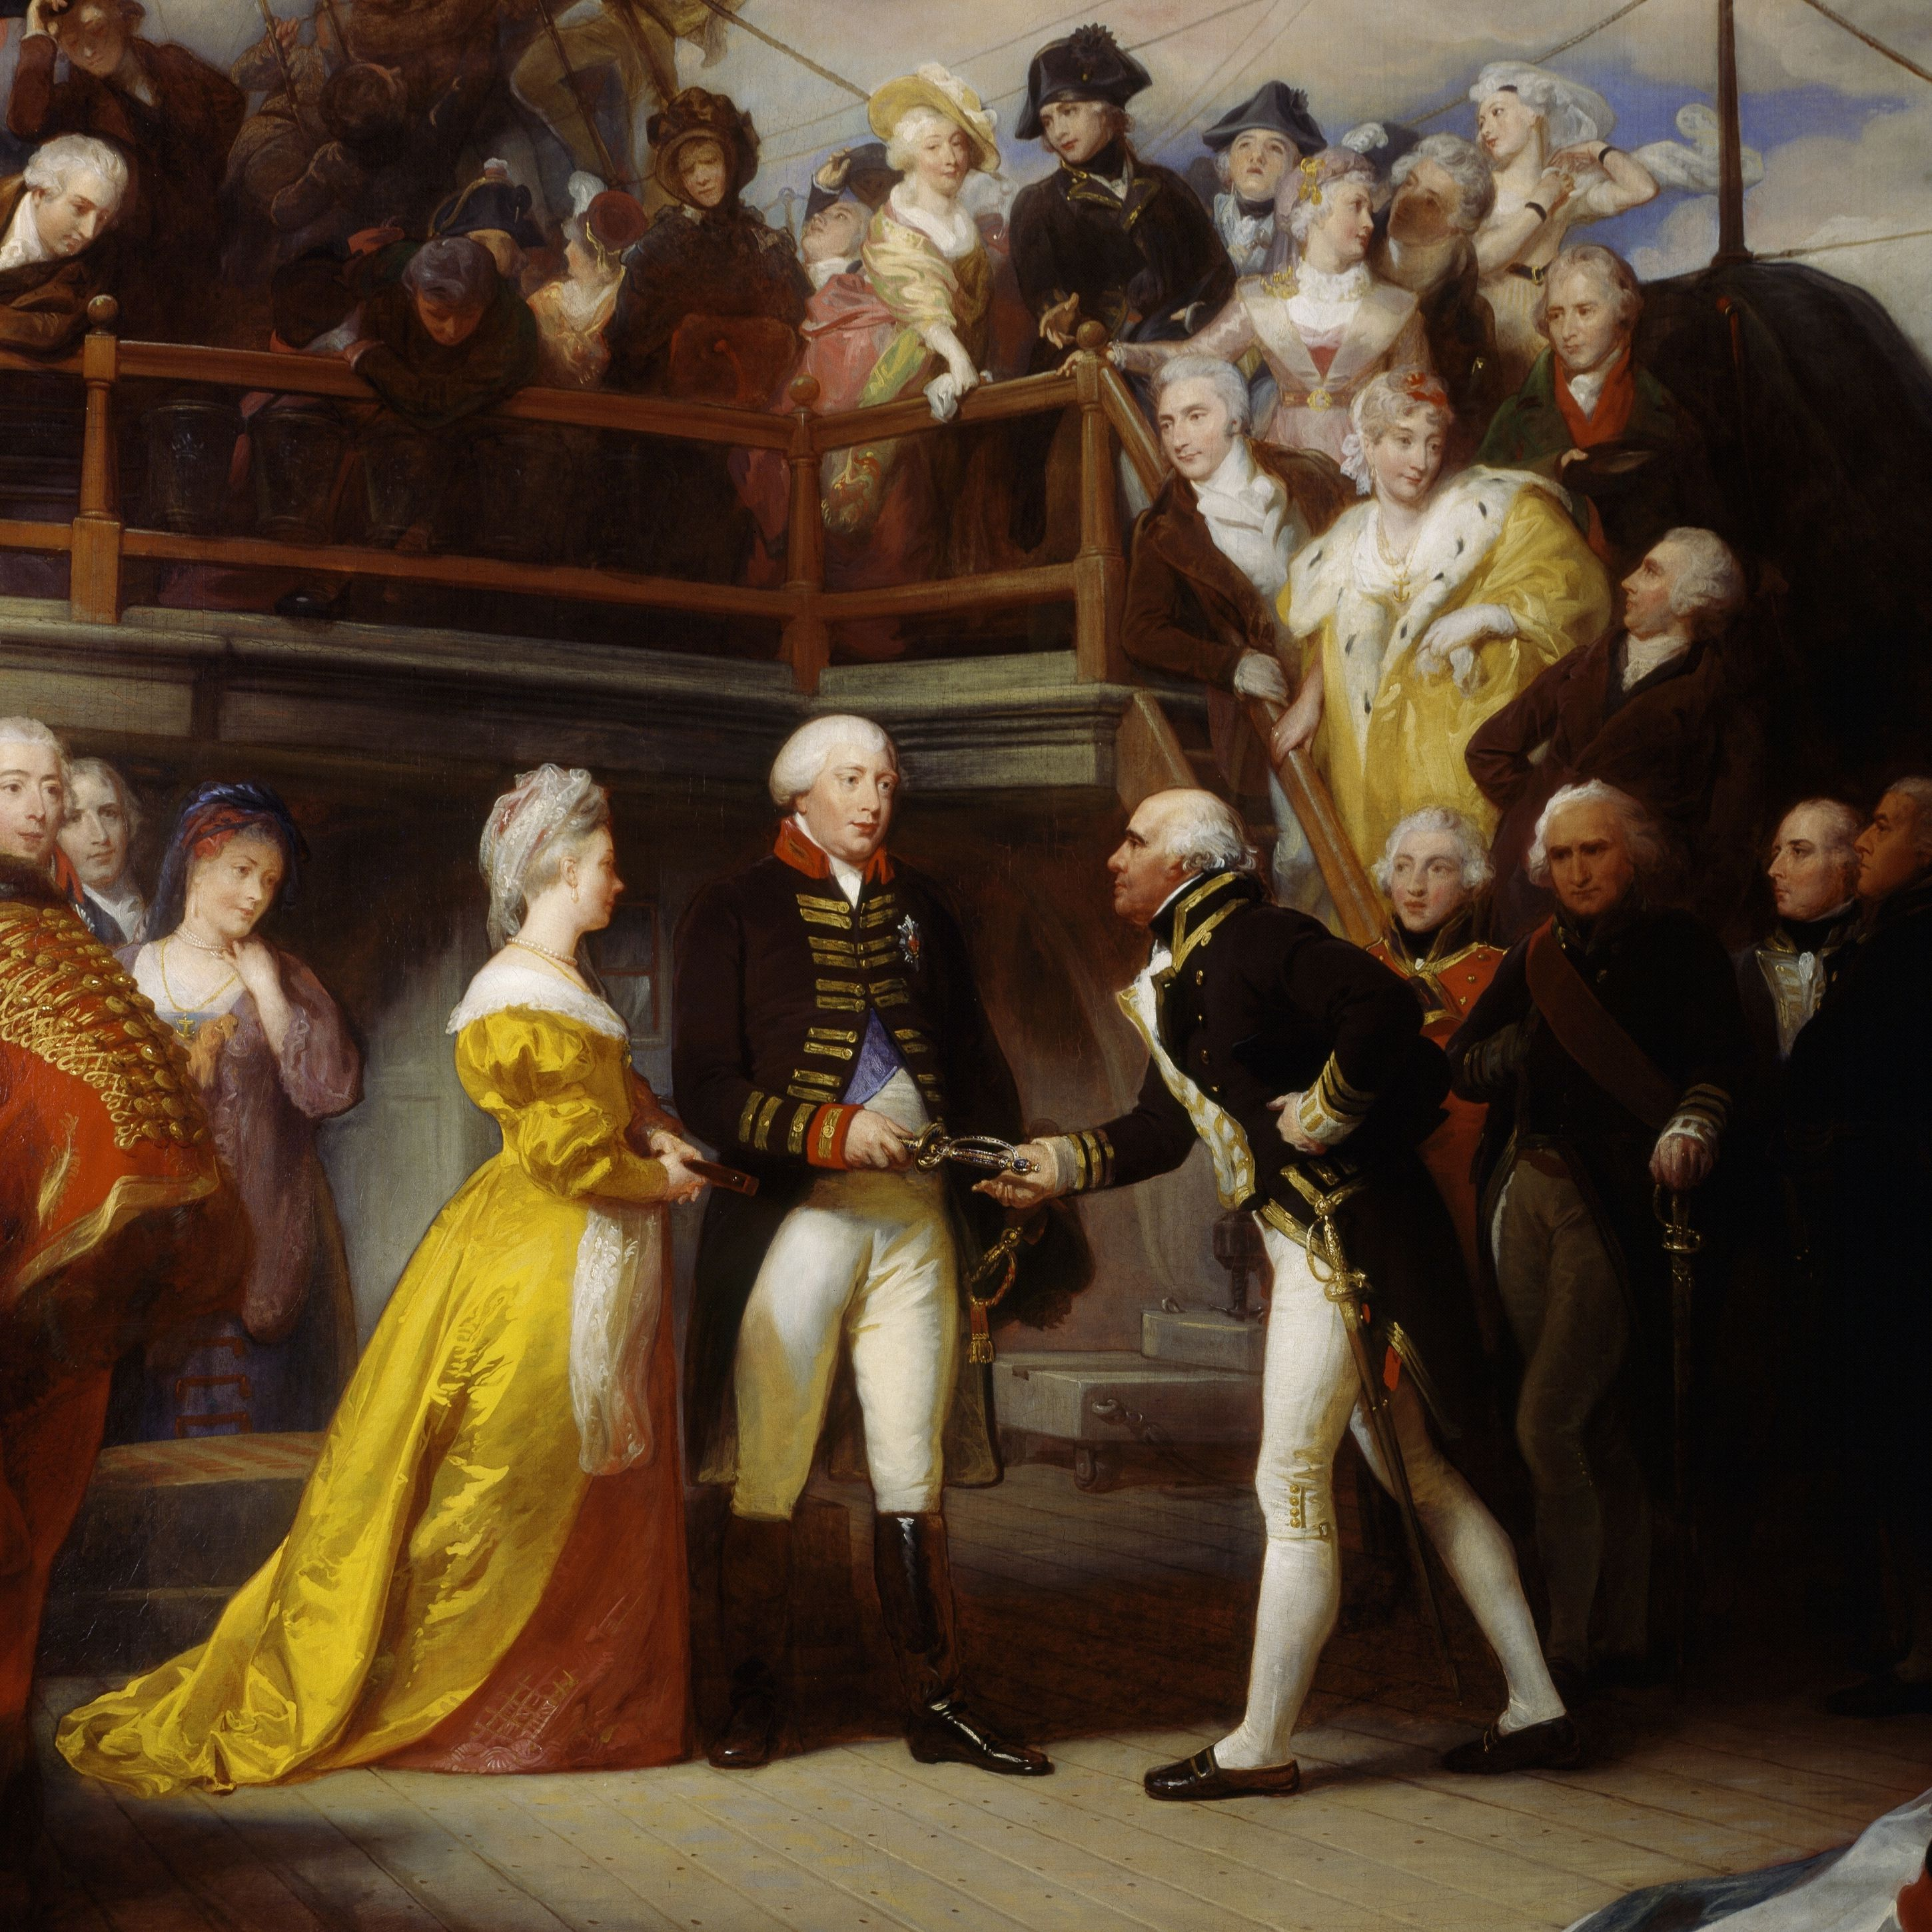 George III visiting Admiral Howe's ship, Queen Charlotte, June 26, 1794, painting by Henry Perronet Briggs (1791 to 1793-1844), oil on canvas, 1625x2555 cm, England, 1828